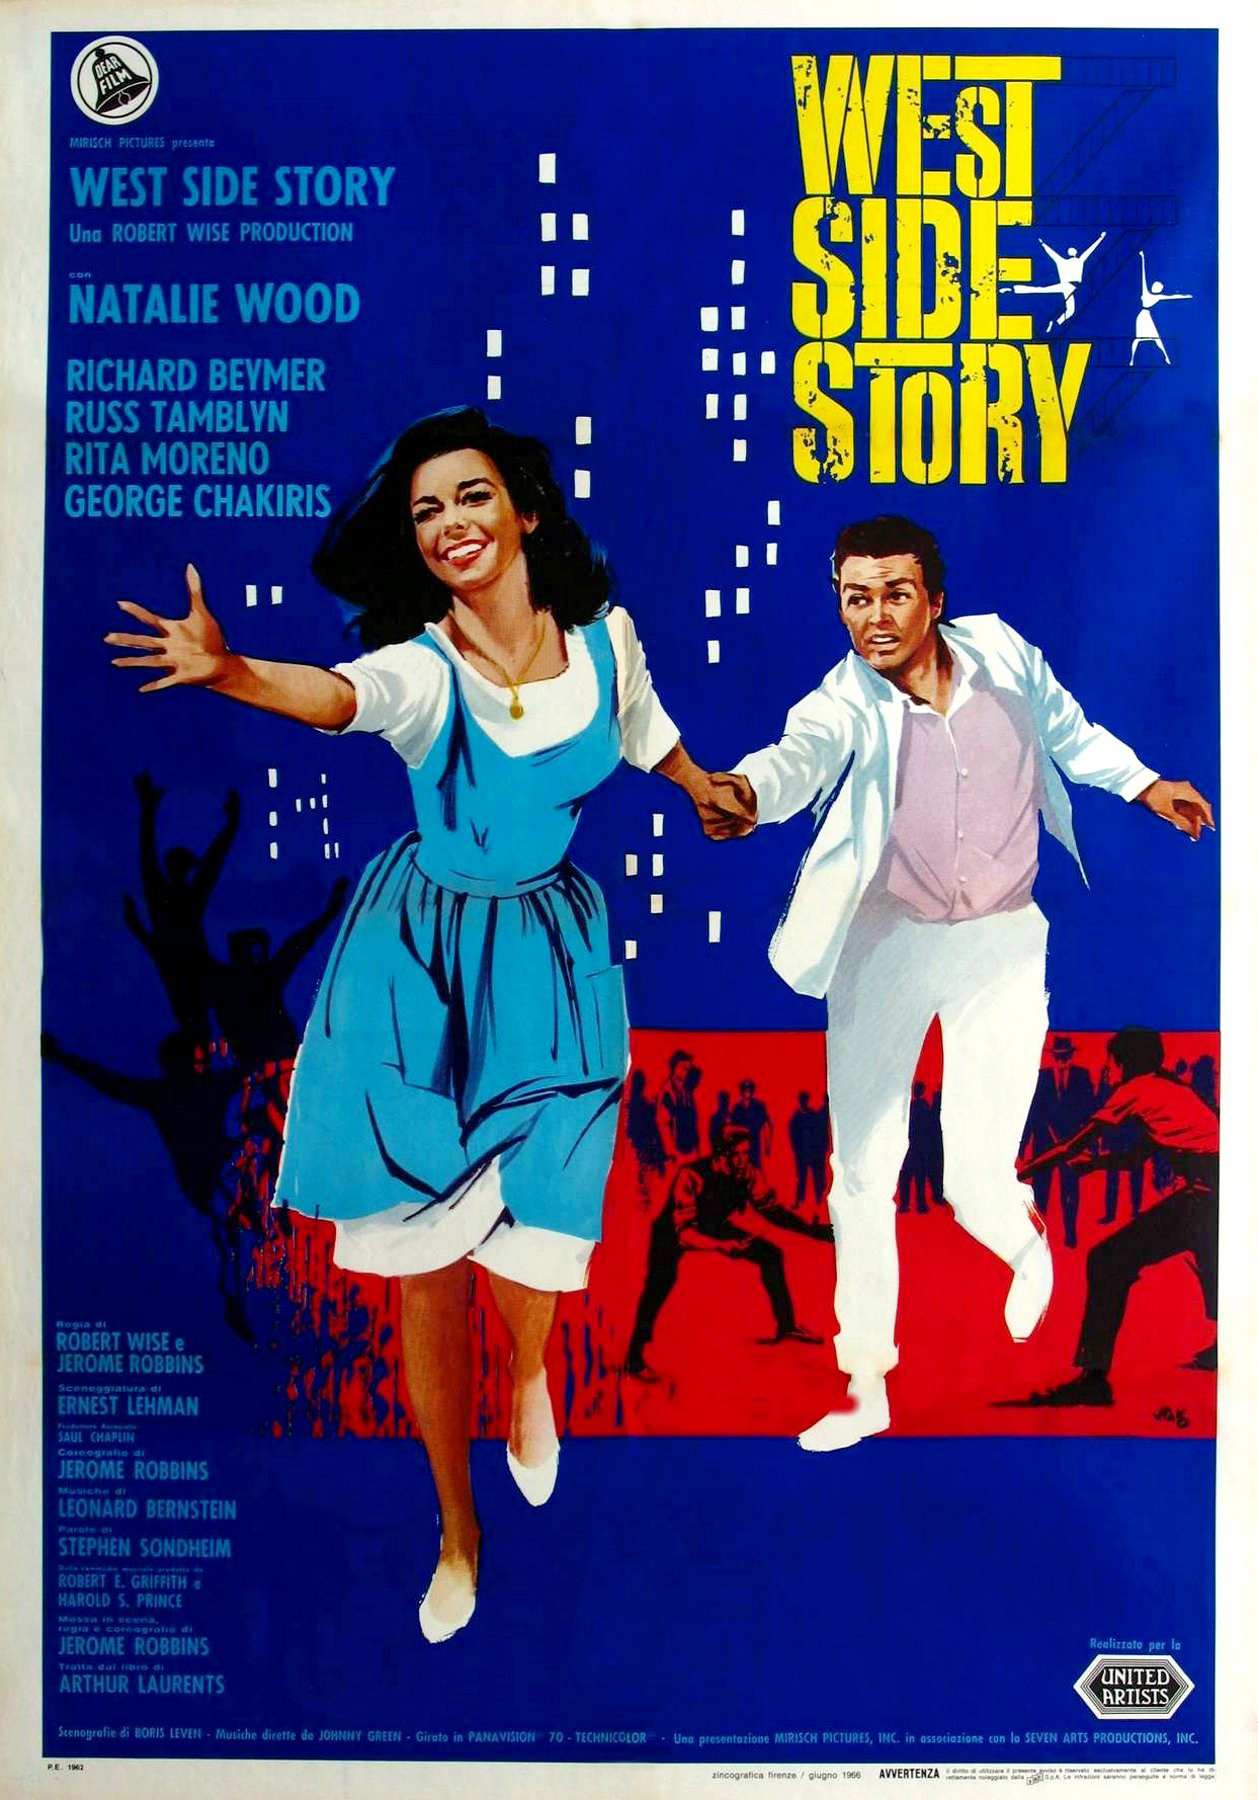 a comparison of romeo and juliet and the premiere of west side story on broadway in 1957